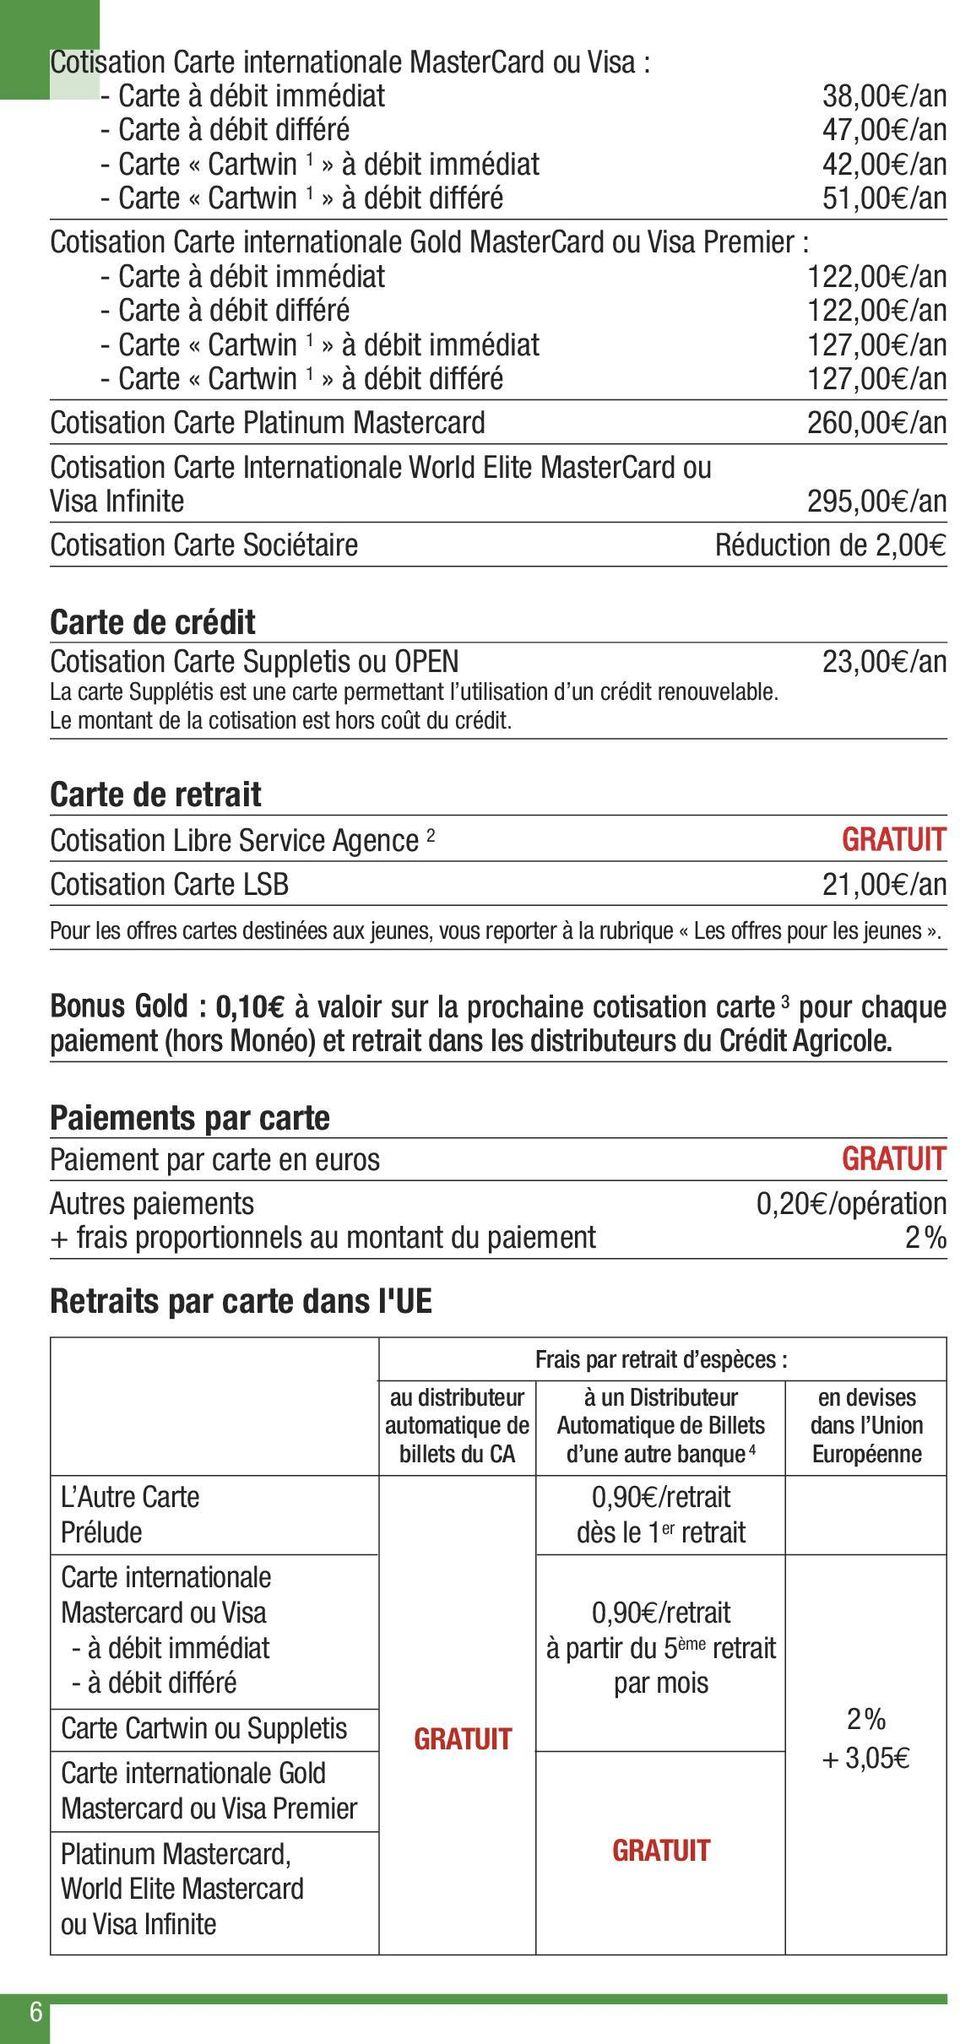 /an - Carte «Cartwin 1» à débit différé 127,00 /an Cotisation Carte Platinum Mastercard 260,00 /an Cotisation Carte Internationale World Elite MasterCard ou Visa Infinite 295,00 /an Cotisation Carte